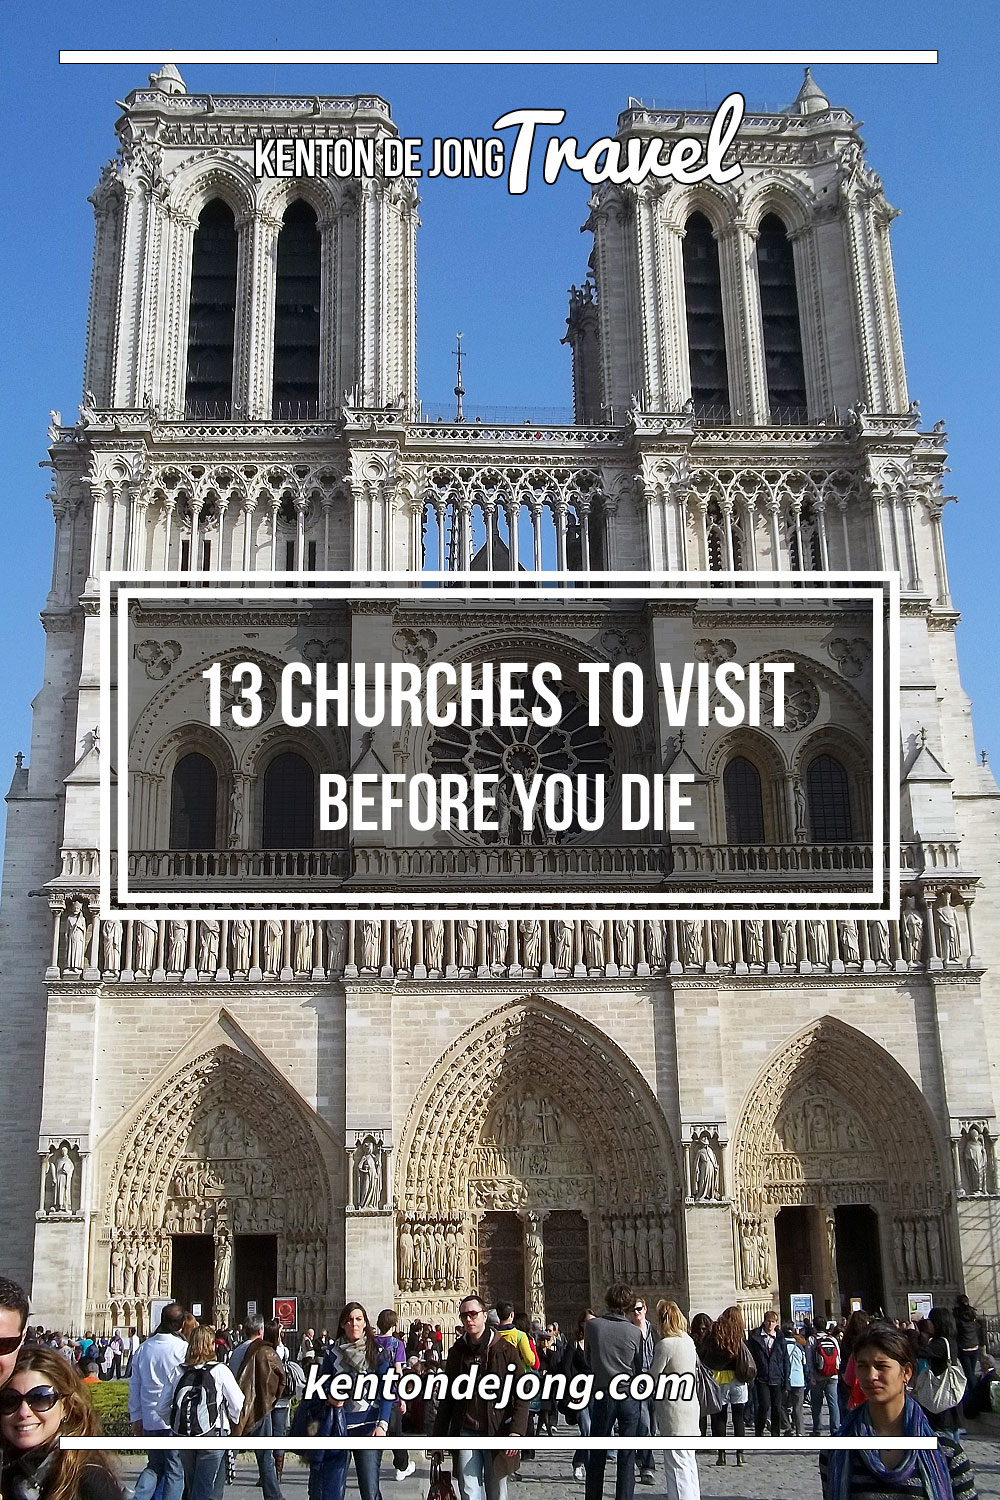 13 Churches to Visit Before You Die